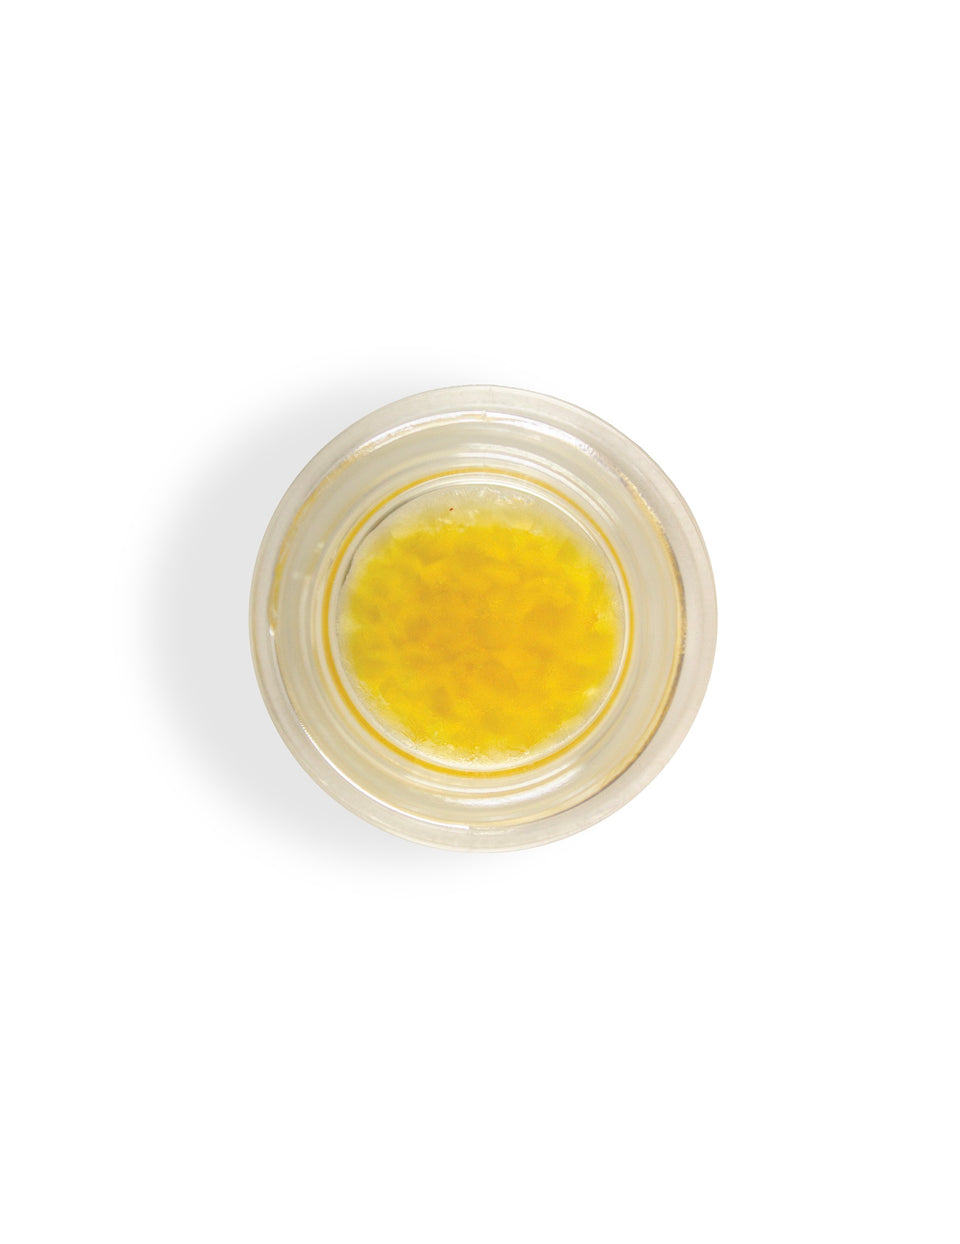 Blue Zkittlez Concentrate 1g, 77.38% CBD